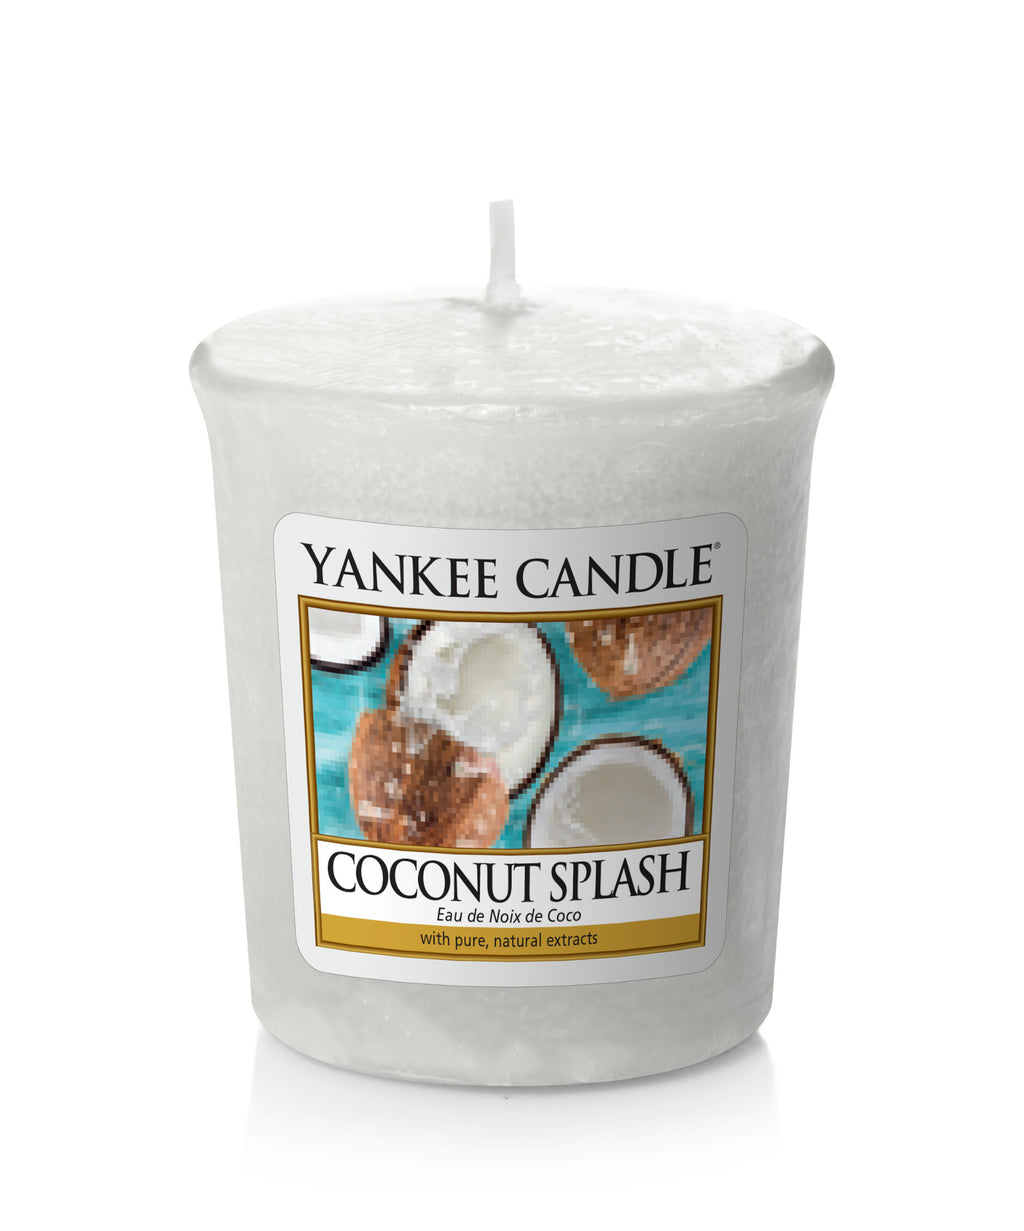 COCONUT SPLASH -Yankee Candle- Candela Sampler